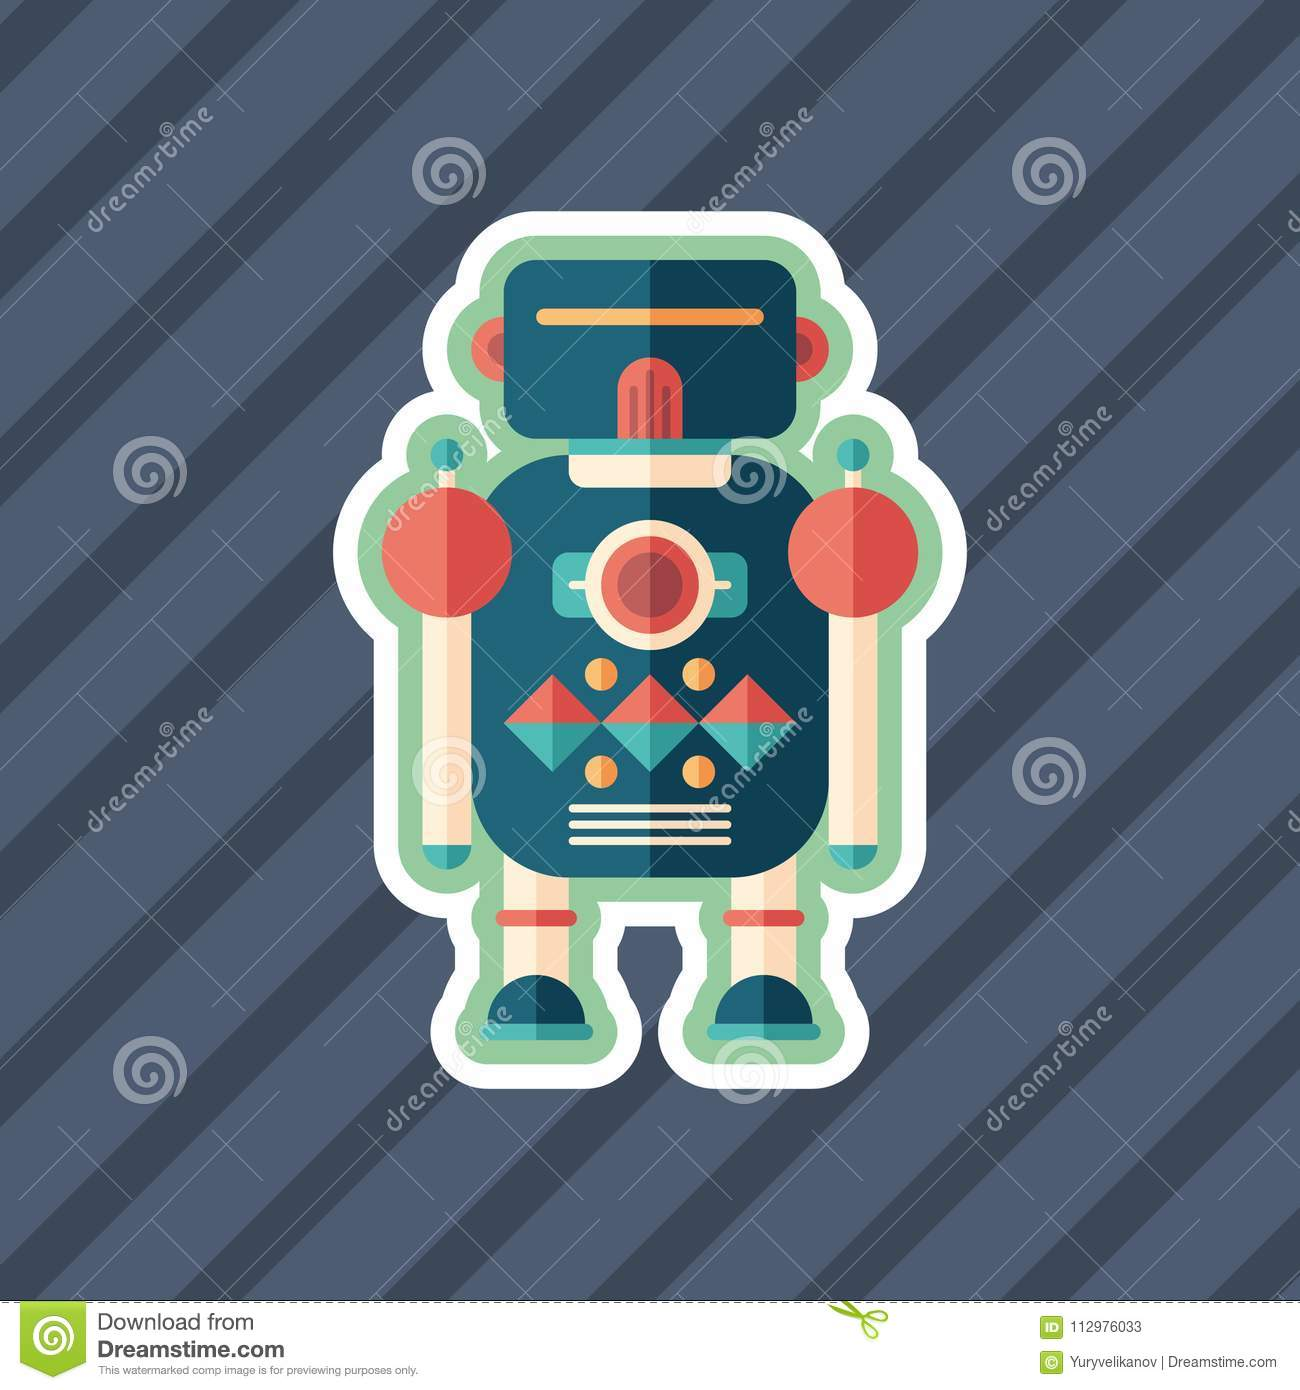 Robot soldier sticker flat icon with color background.